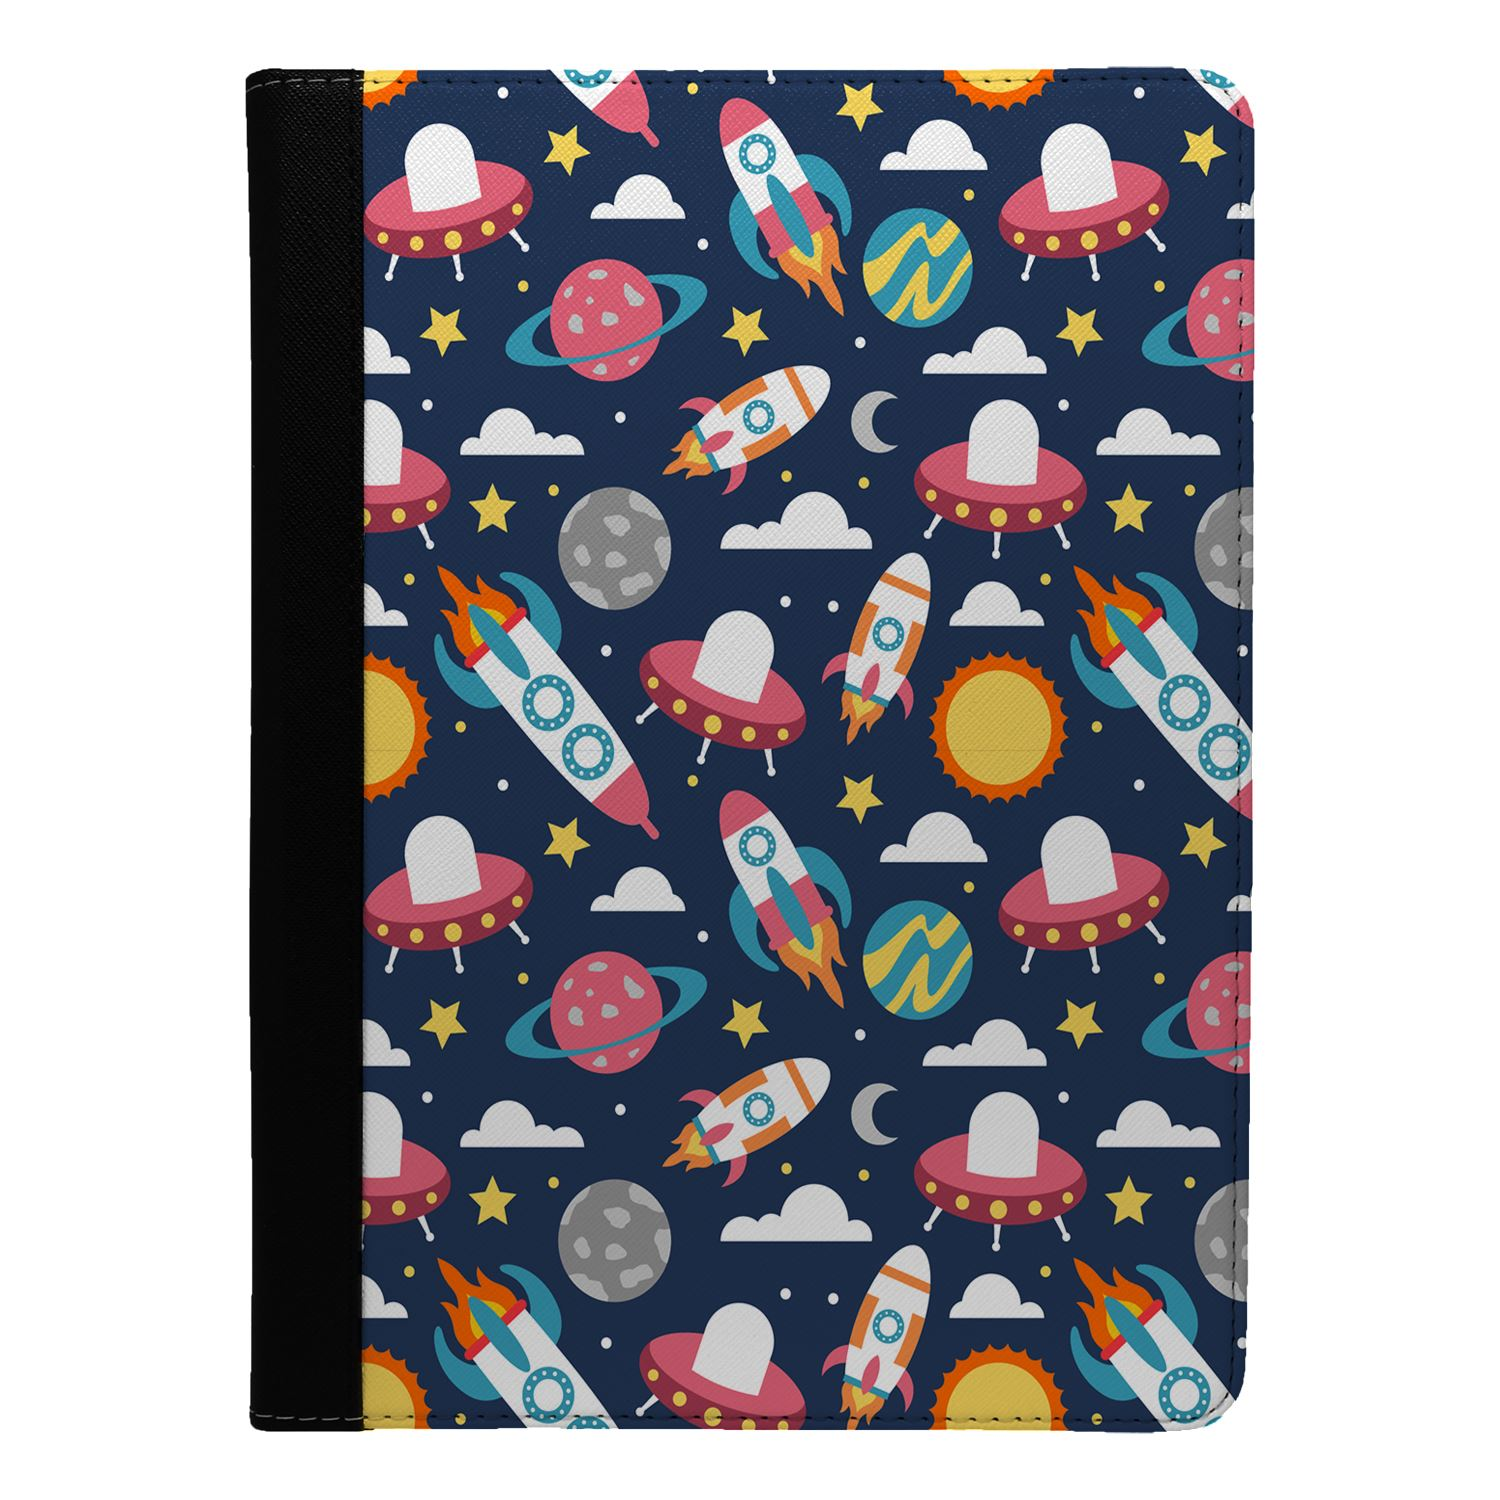 Rocket-Ship-Space-Pattern-Flip-Case-Cover-For-Apple-iPad-S8546